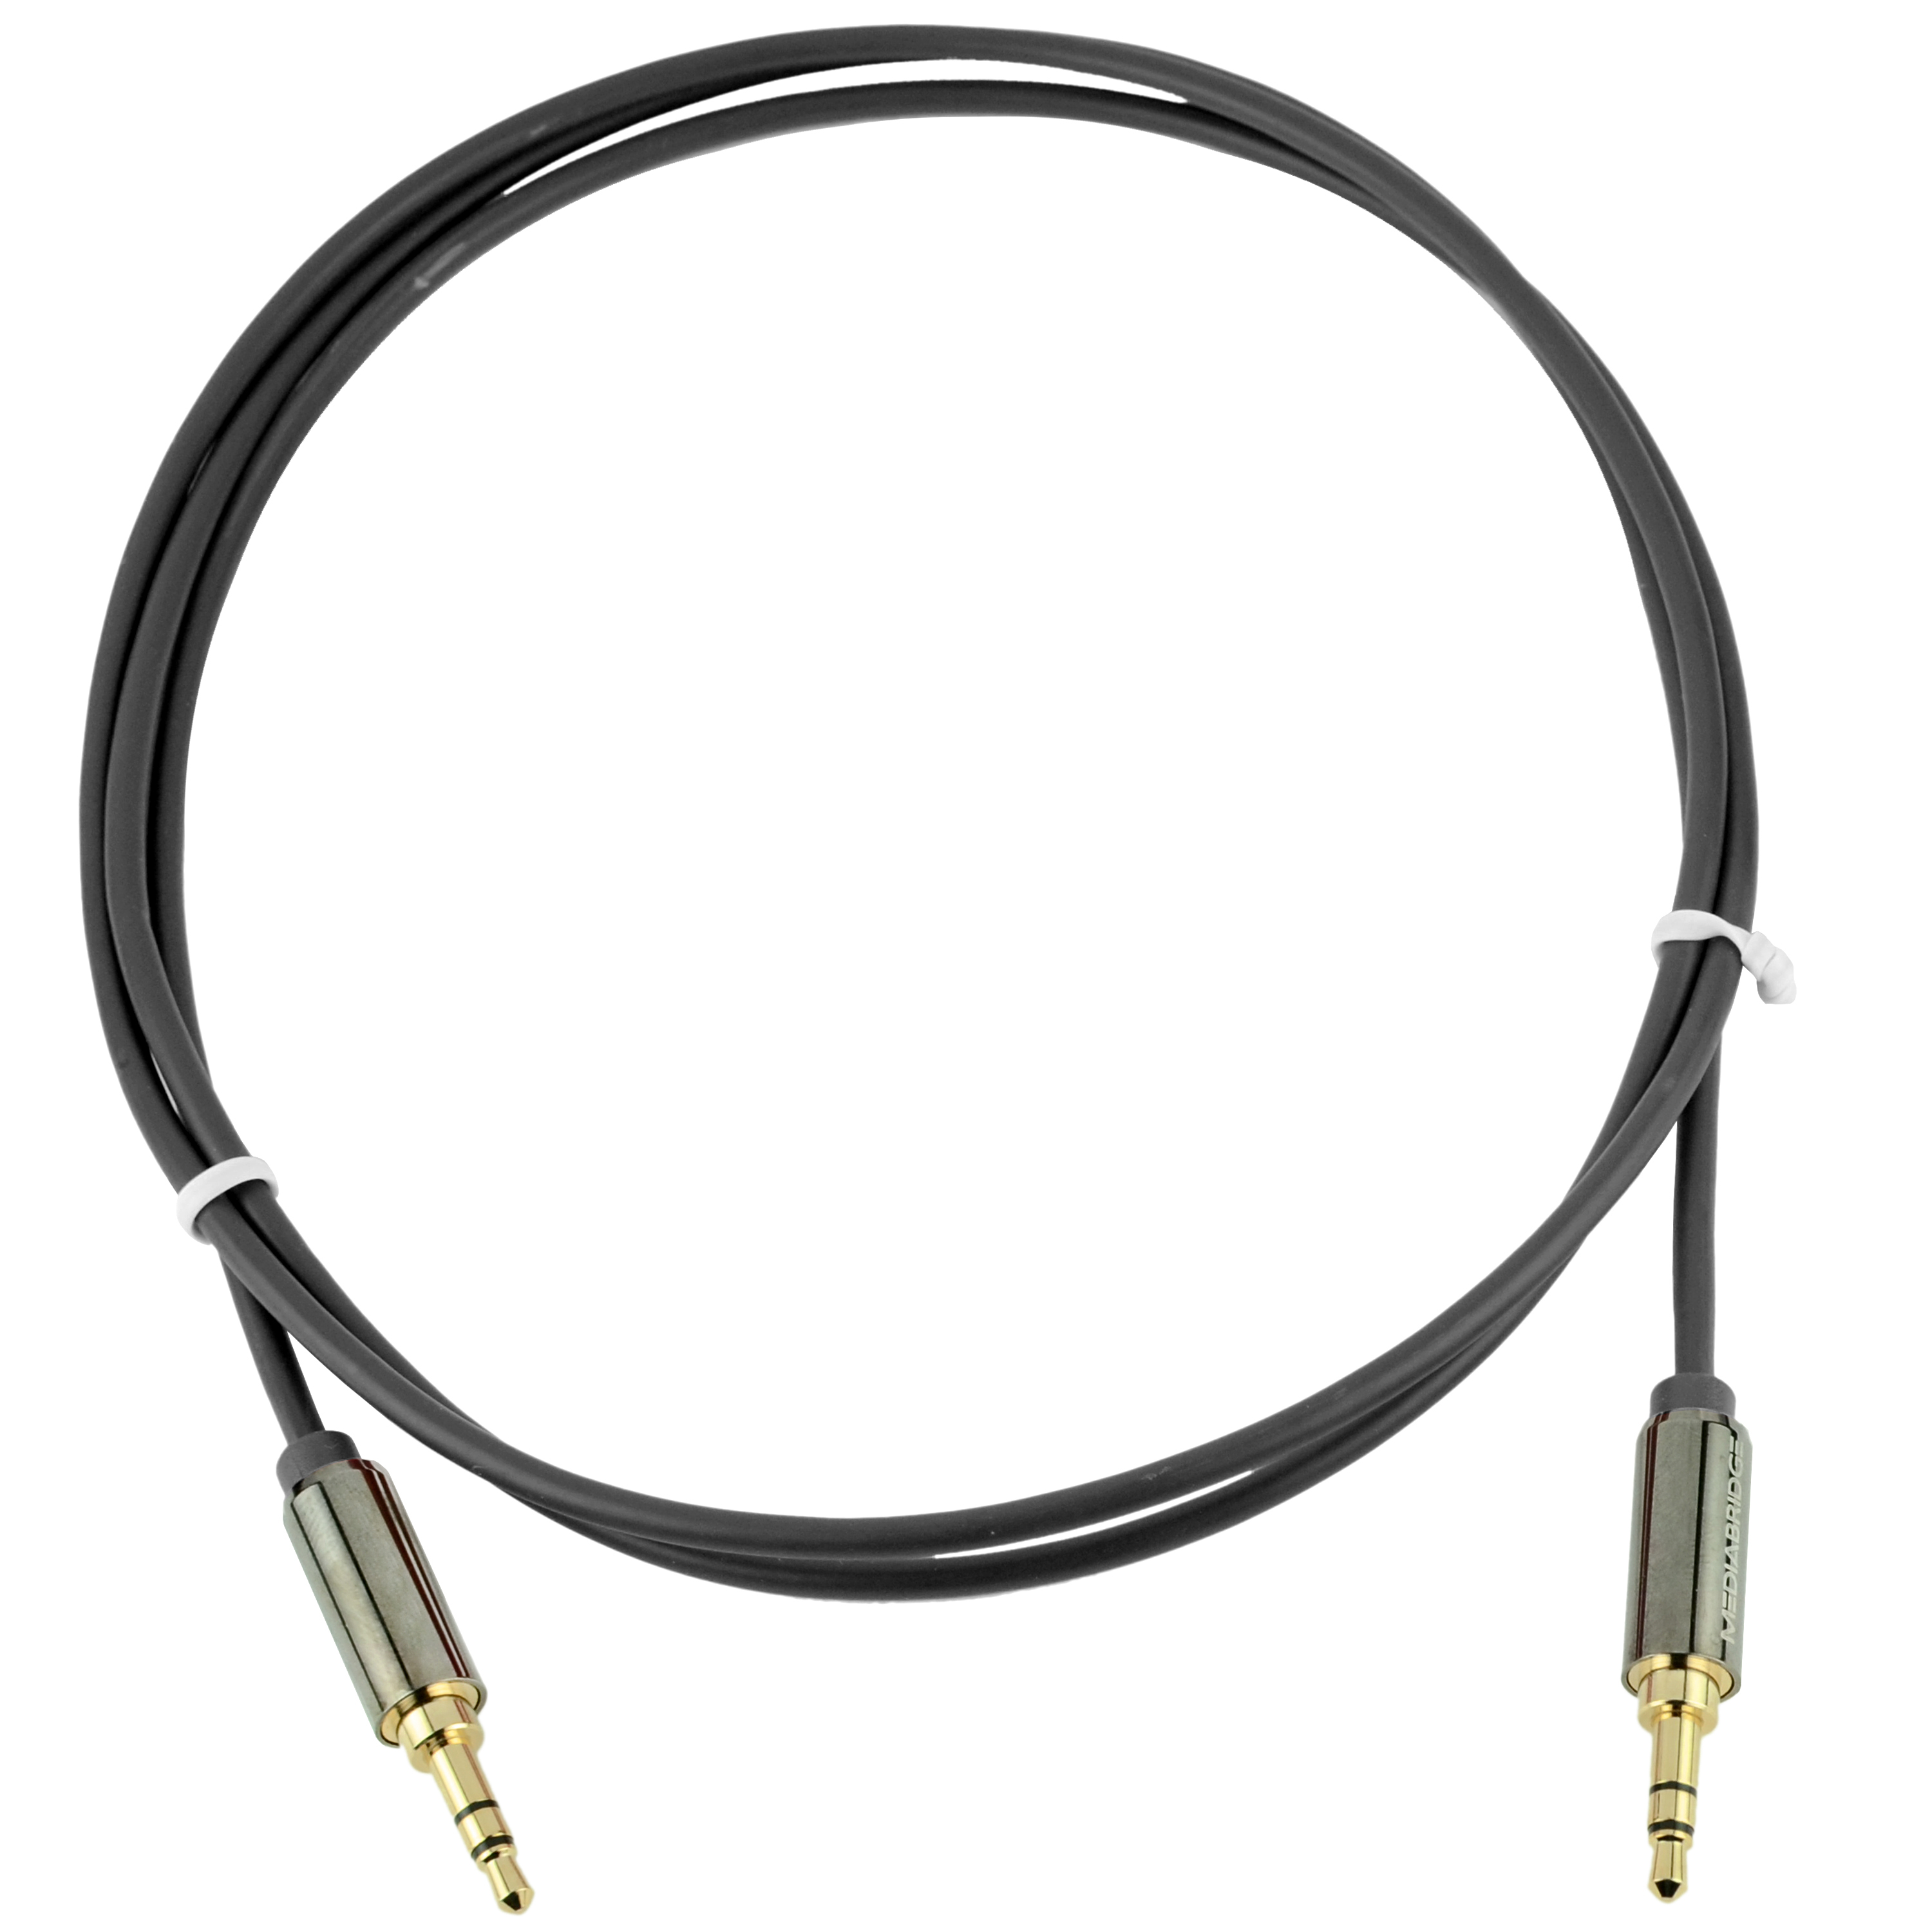 Shop New 3 5mm Male To Male Stereo Audio Cable